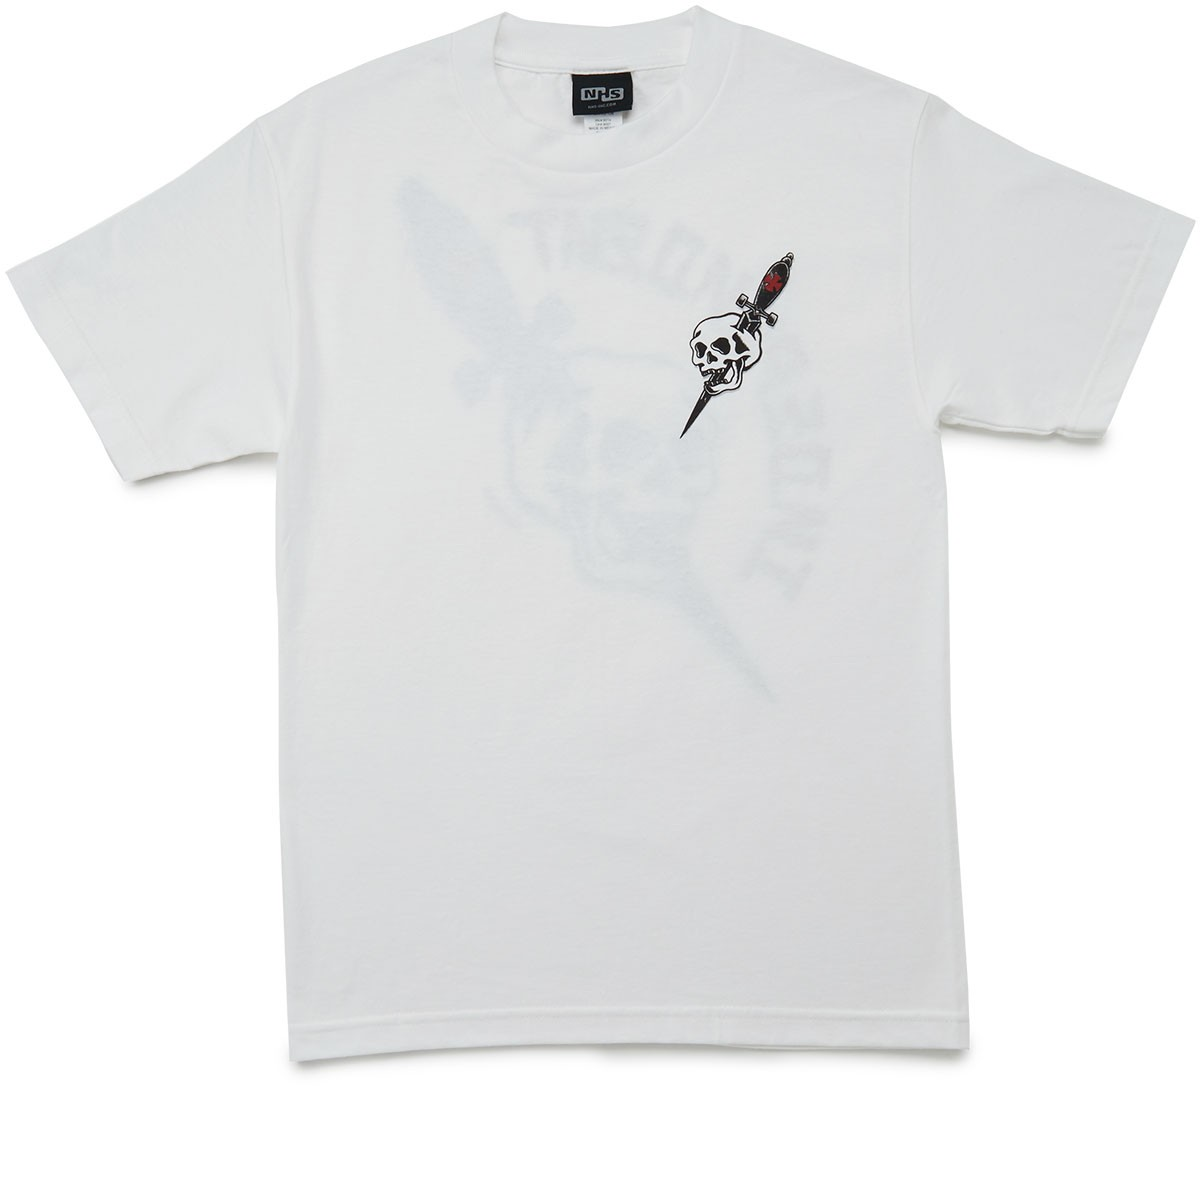 Independent Dressen Dagger T-Shirt - White